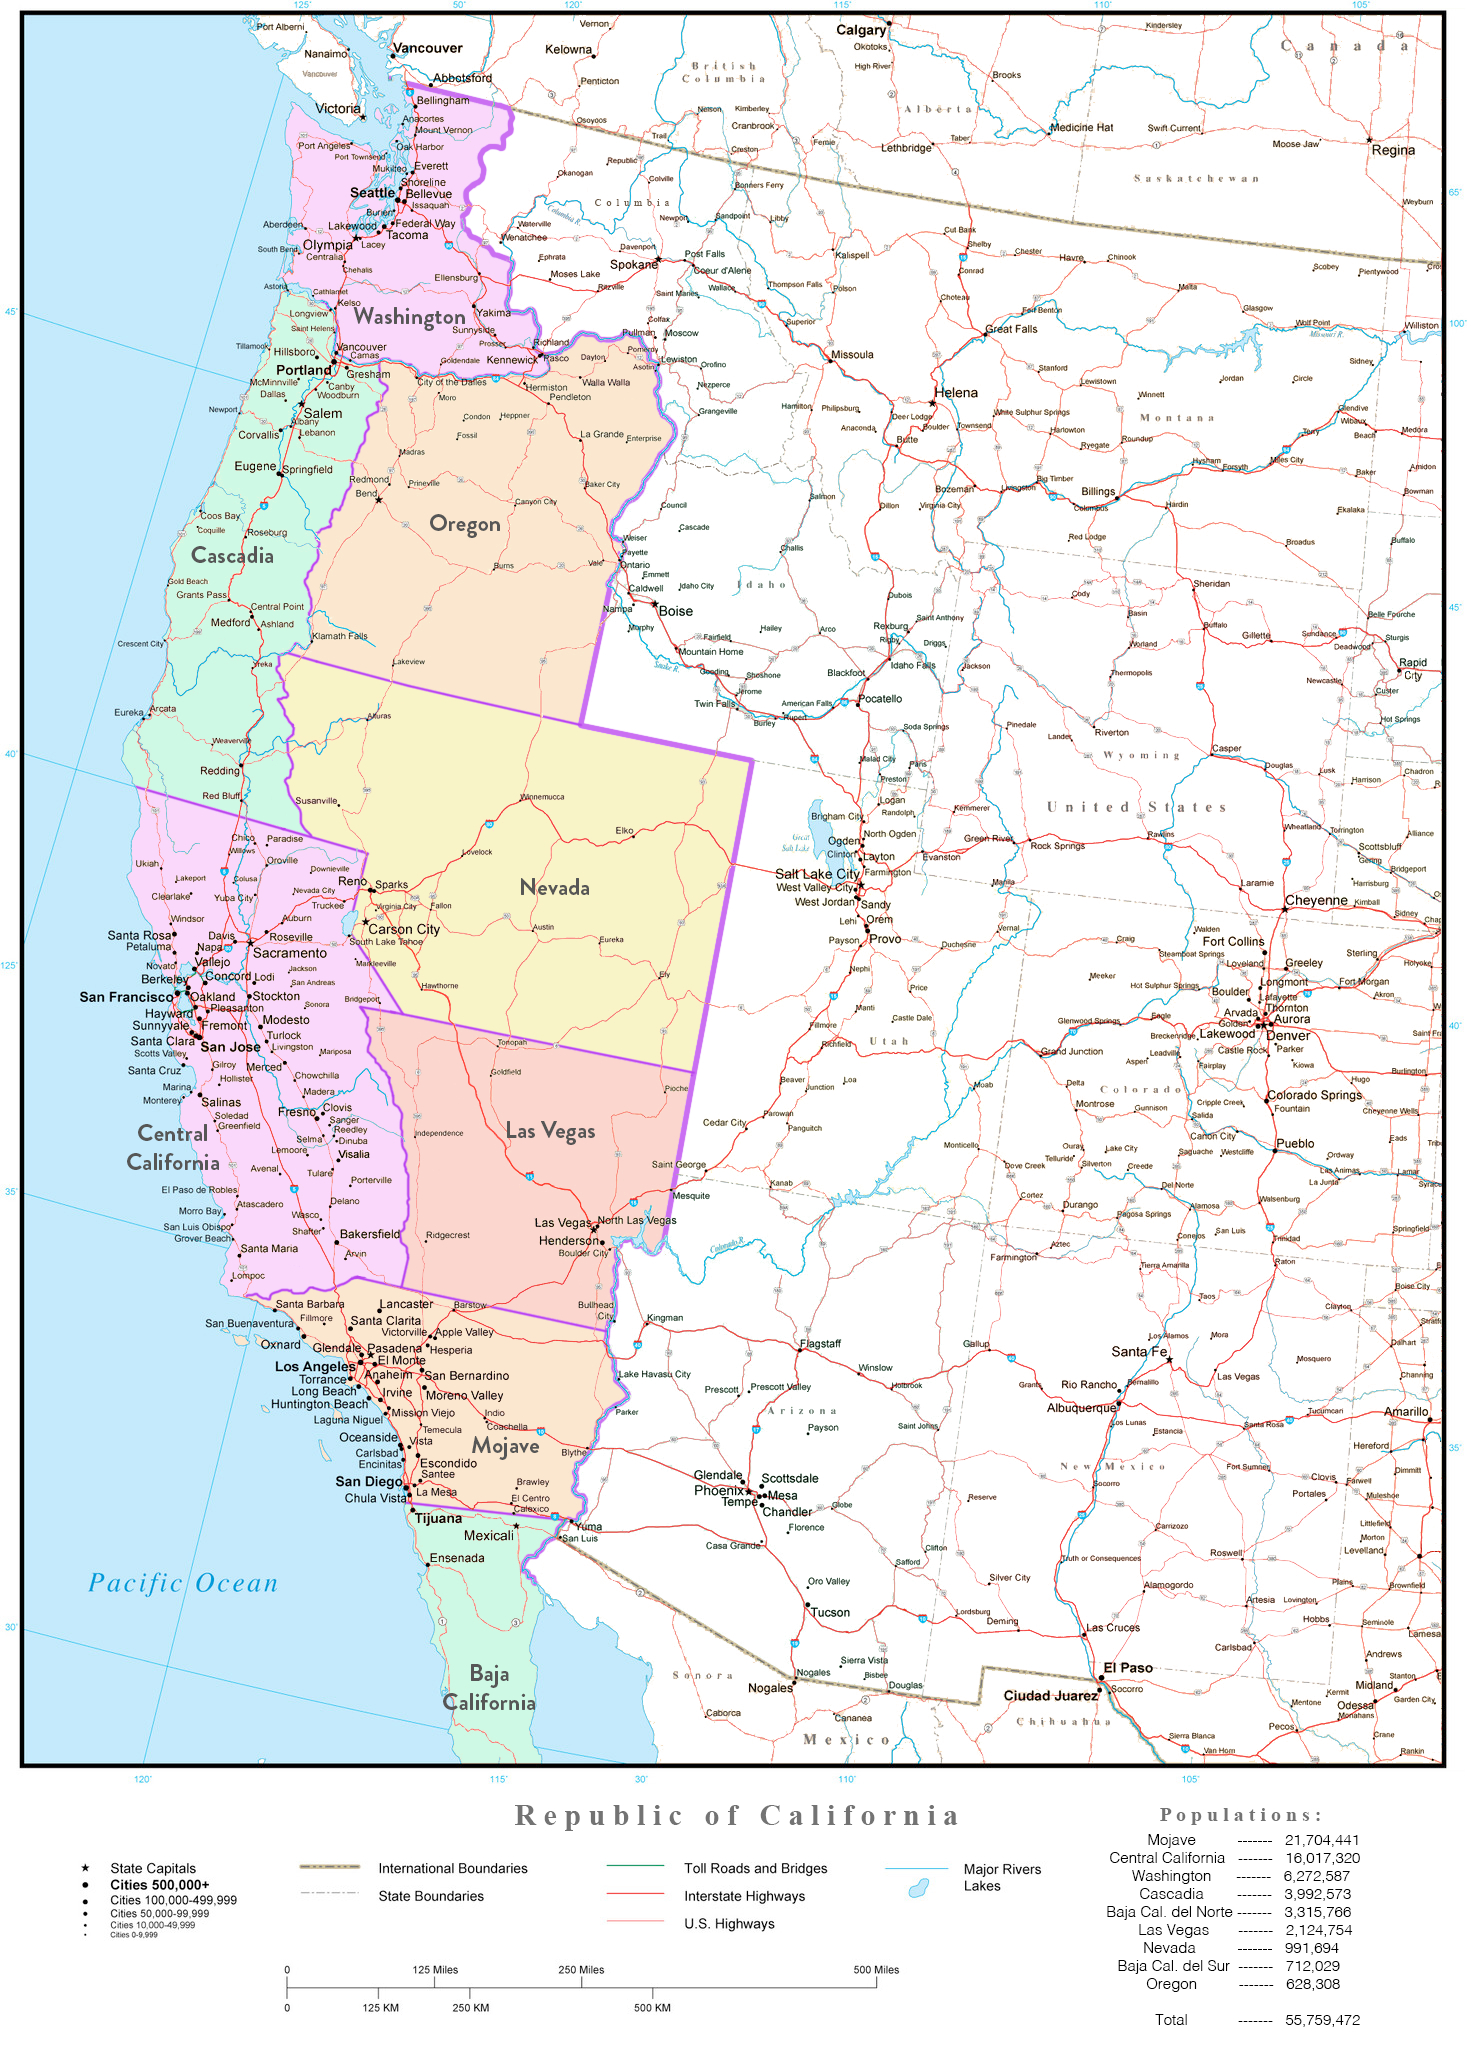 Map Of The Independent Republic Of California : Imaginarymaps - Map Of The New California Republic